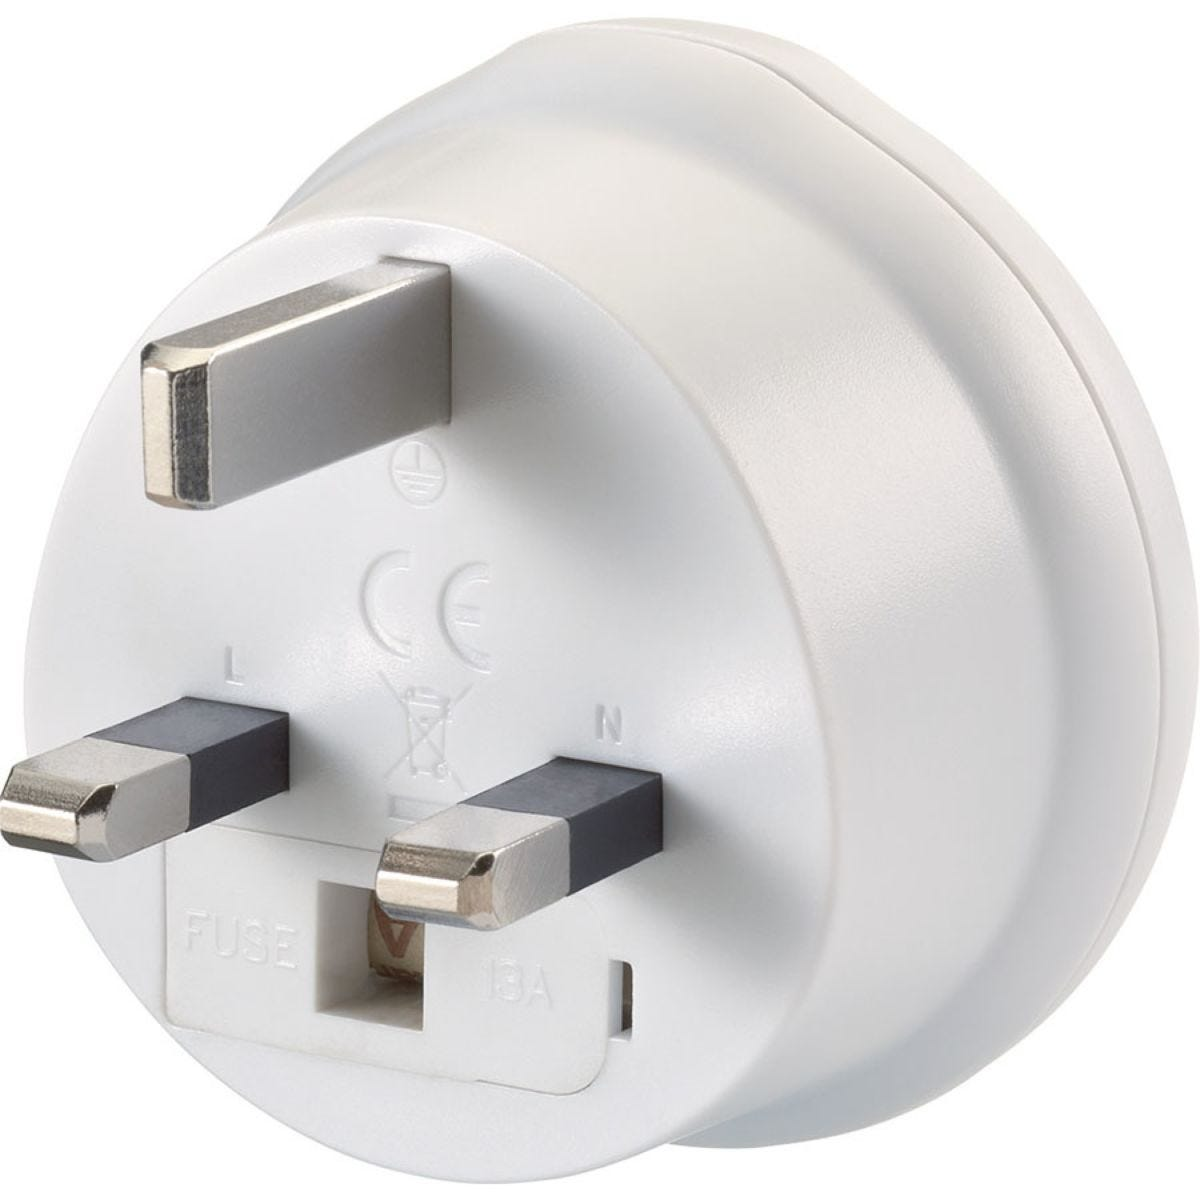 Go Travel USA to UK Adapter